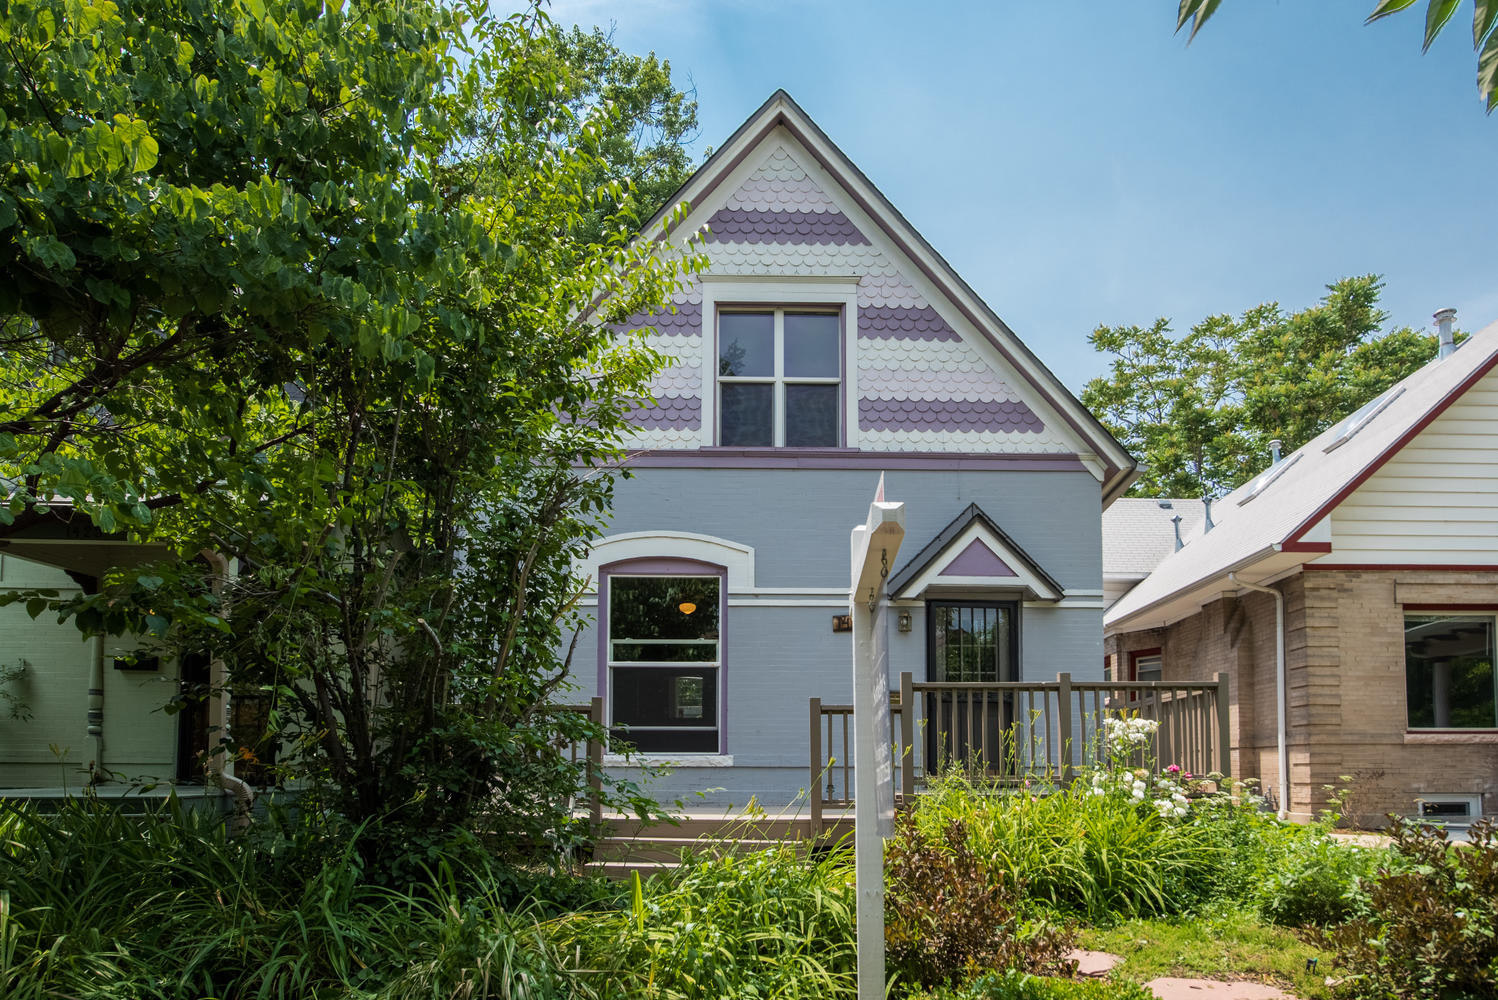 Single Family Home for Sale at Cute-as-a-button Victorian 2-story bungalow with original charm 1429 Milwaukee Street Congress Park, Denver, Colorado, 80206 United States